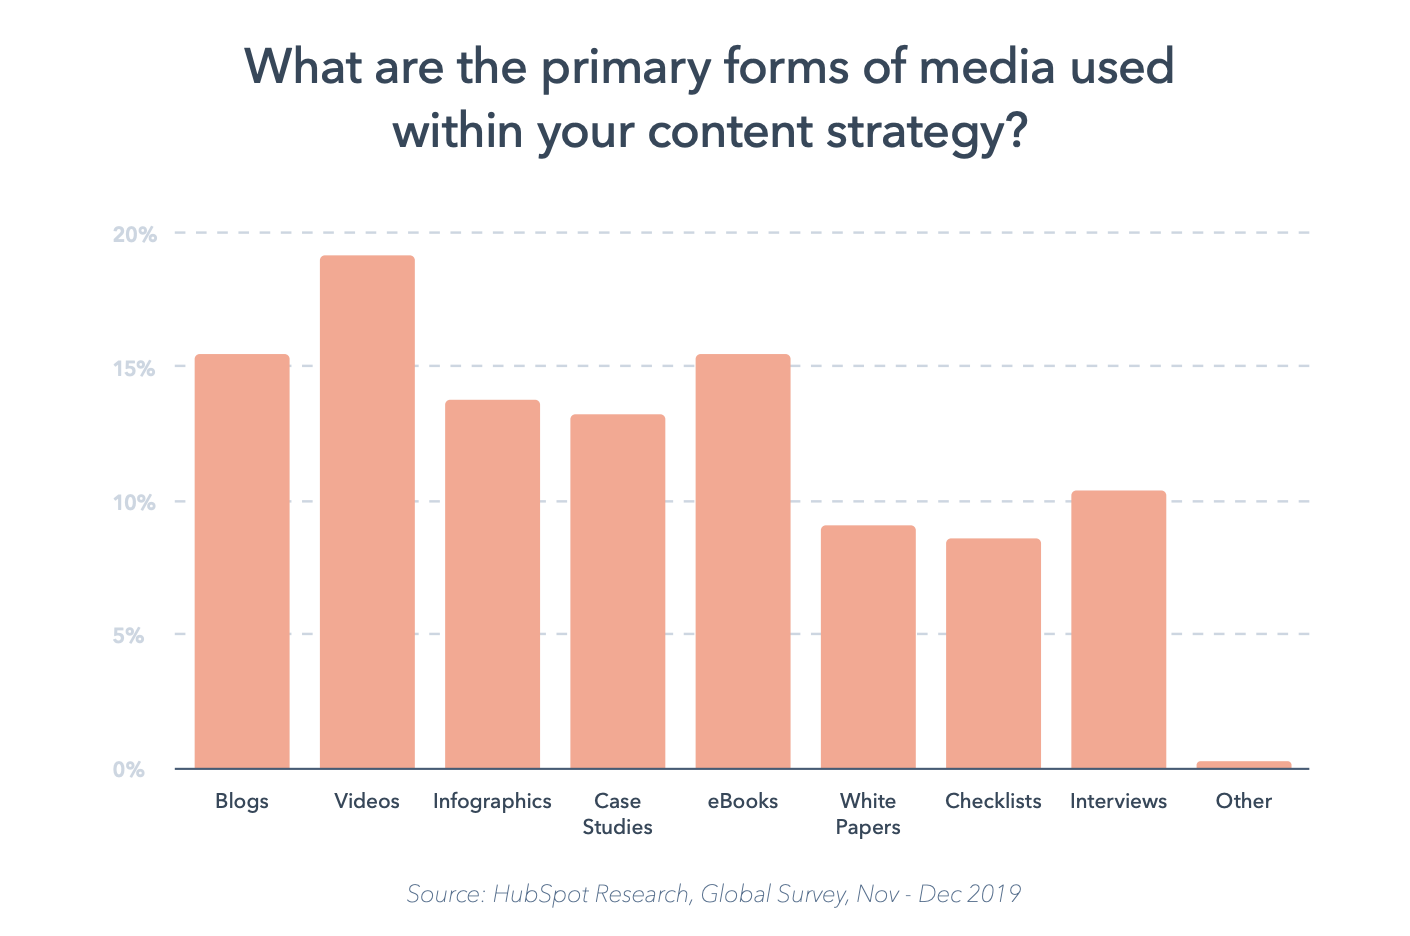 video is the #1 form of media used in content strategy